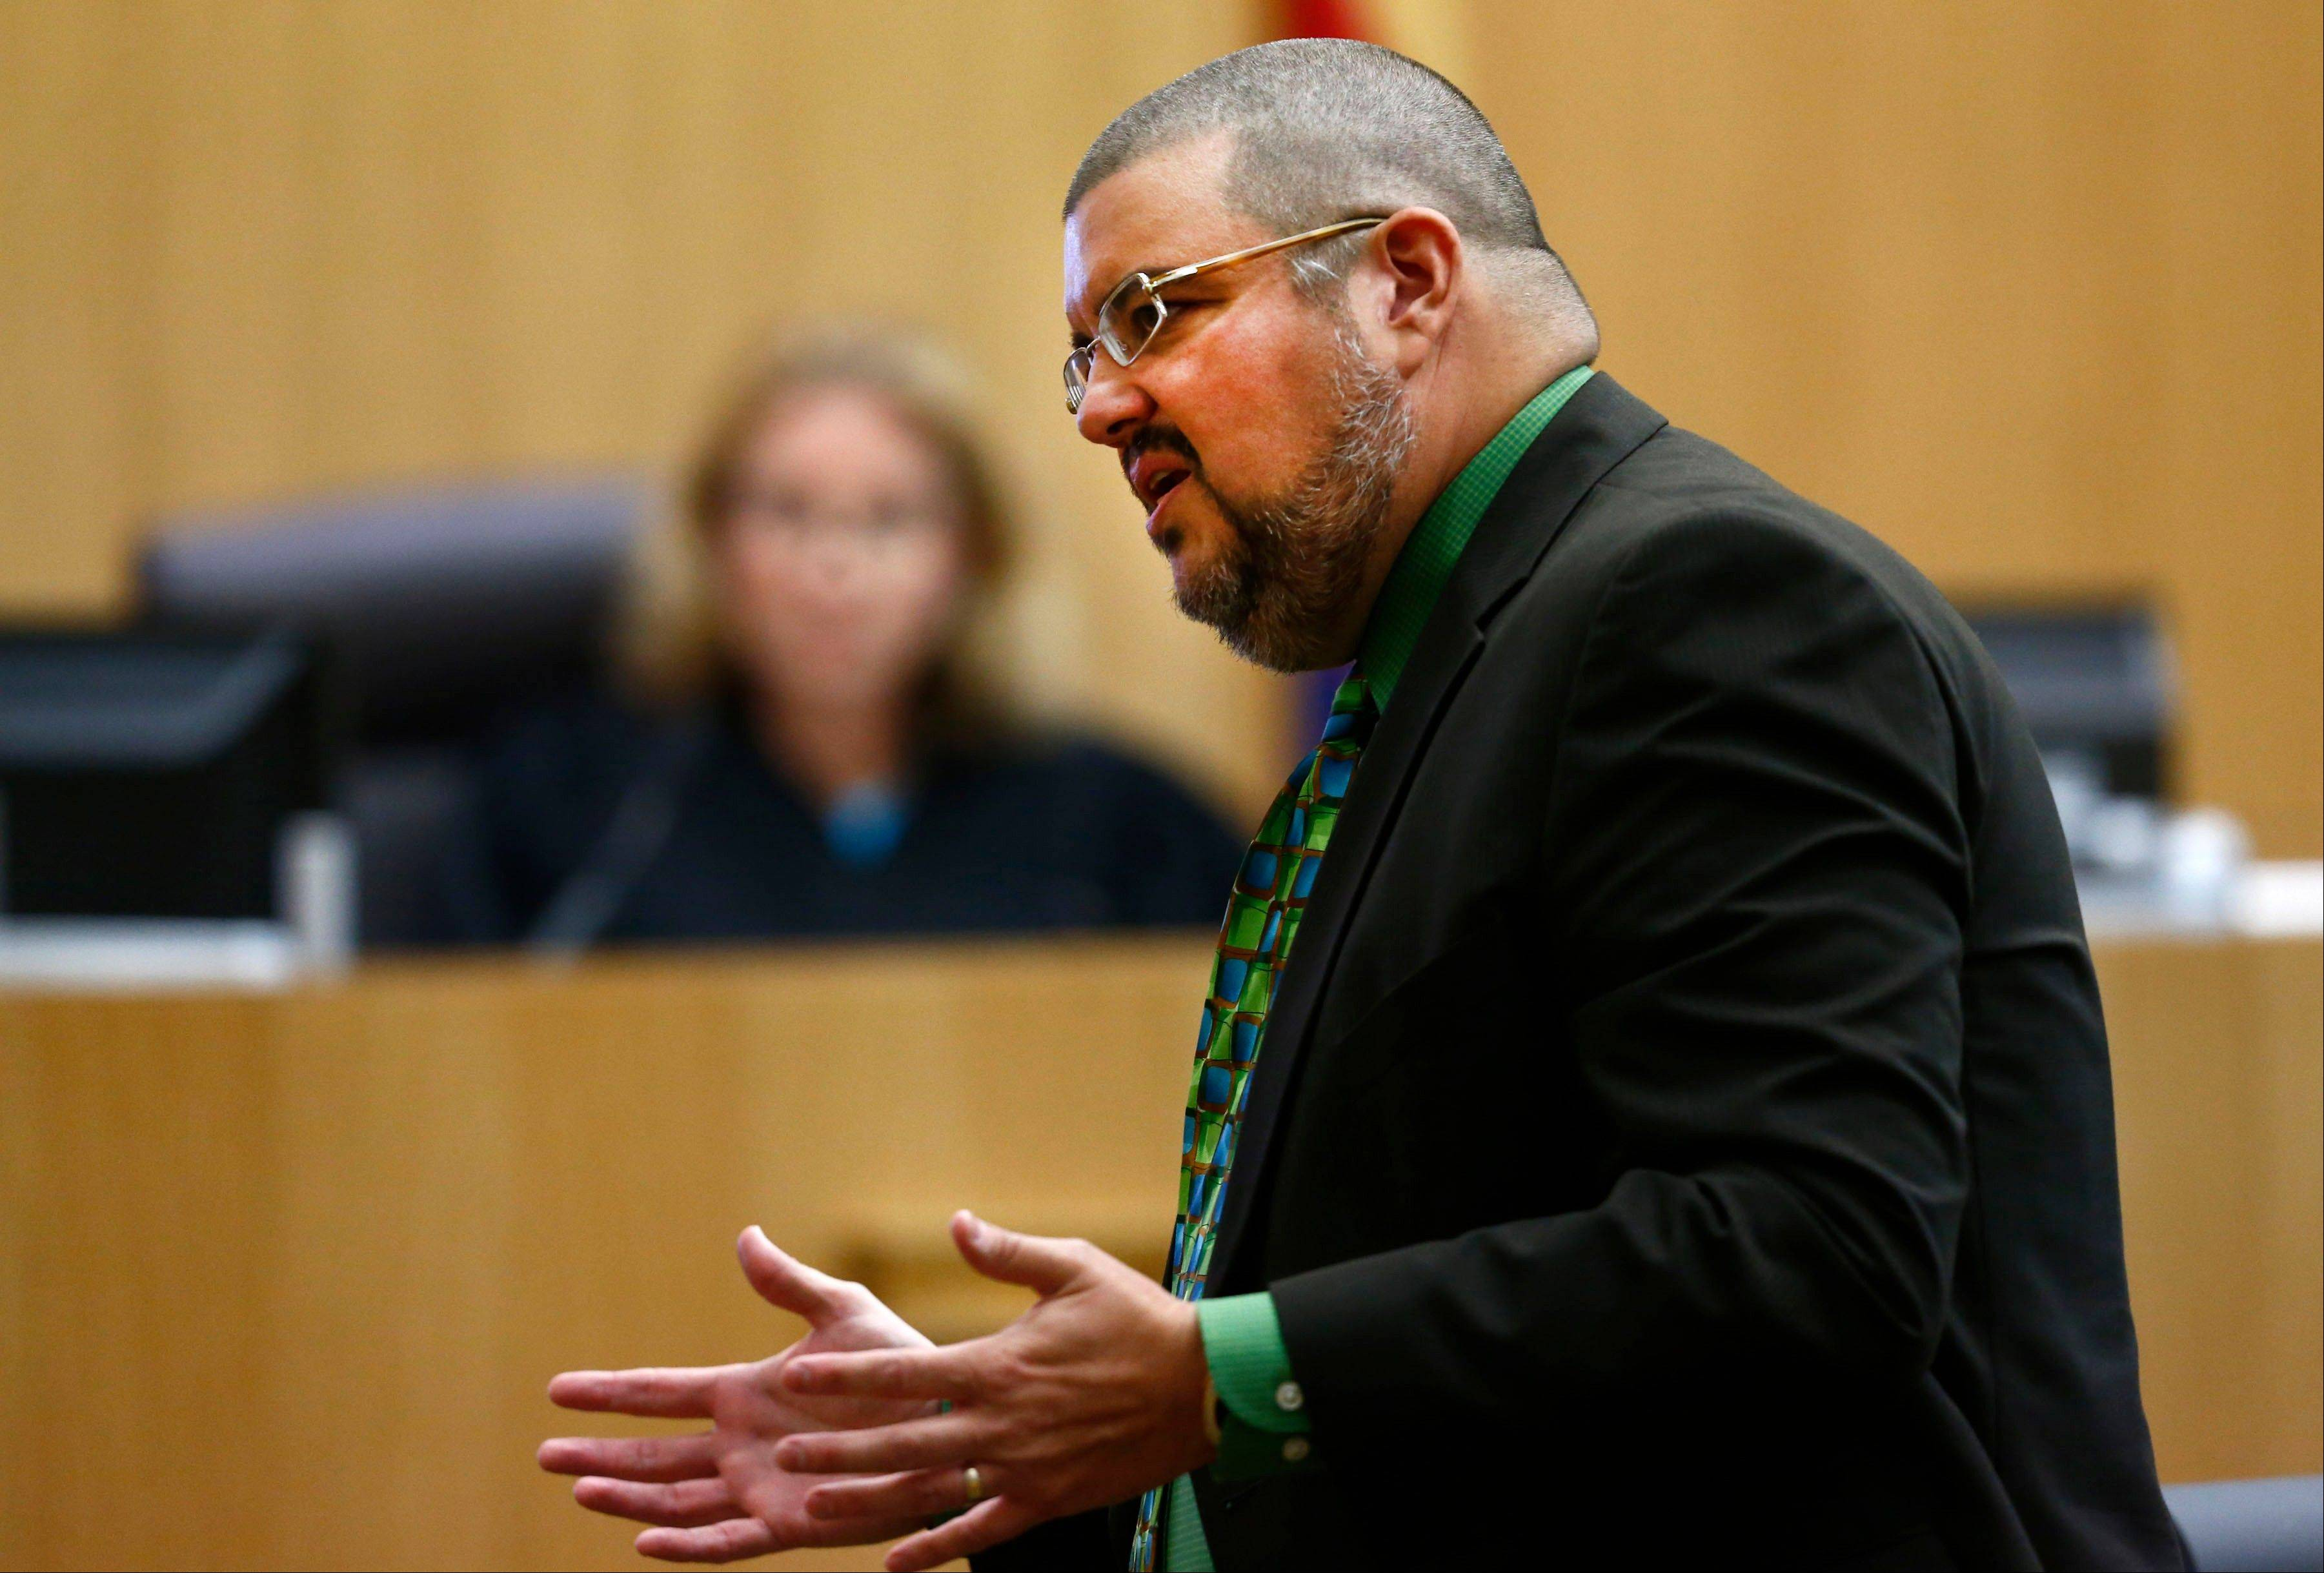 Defense attorney Kirk Nurmi addresses the jury during the sentencing phase of the Jodi Arias murder trial at Maricopa County Superior Court in Phoenix. On Tuesday, Nurmi and Jennifer Willmott asked a judge for permission to withdraw from the case. The request was denied.